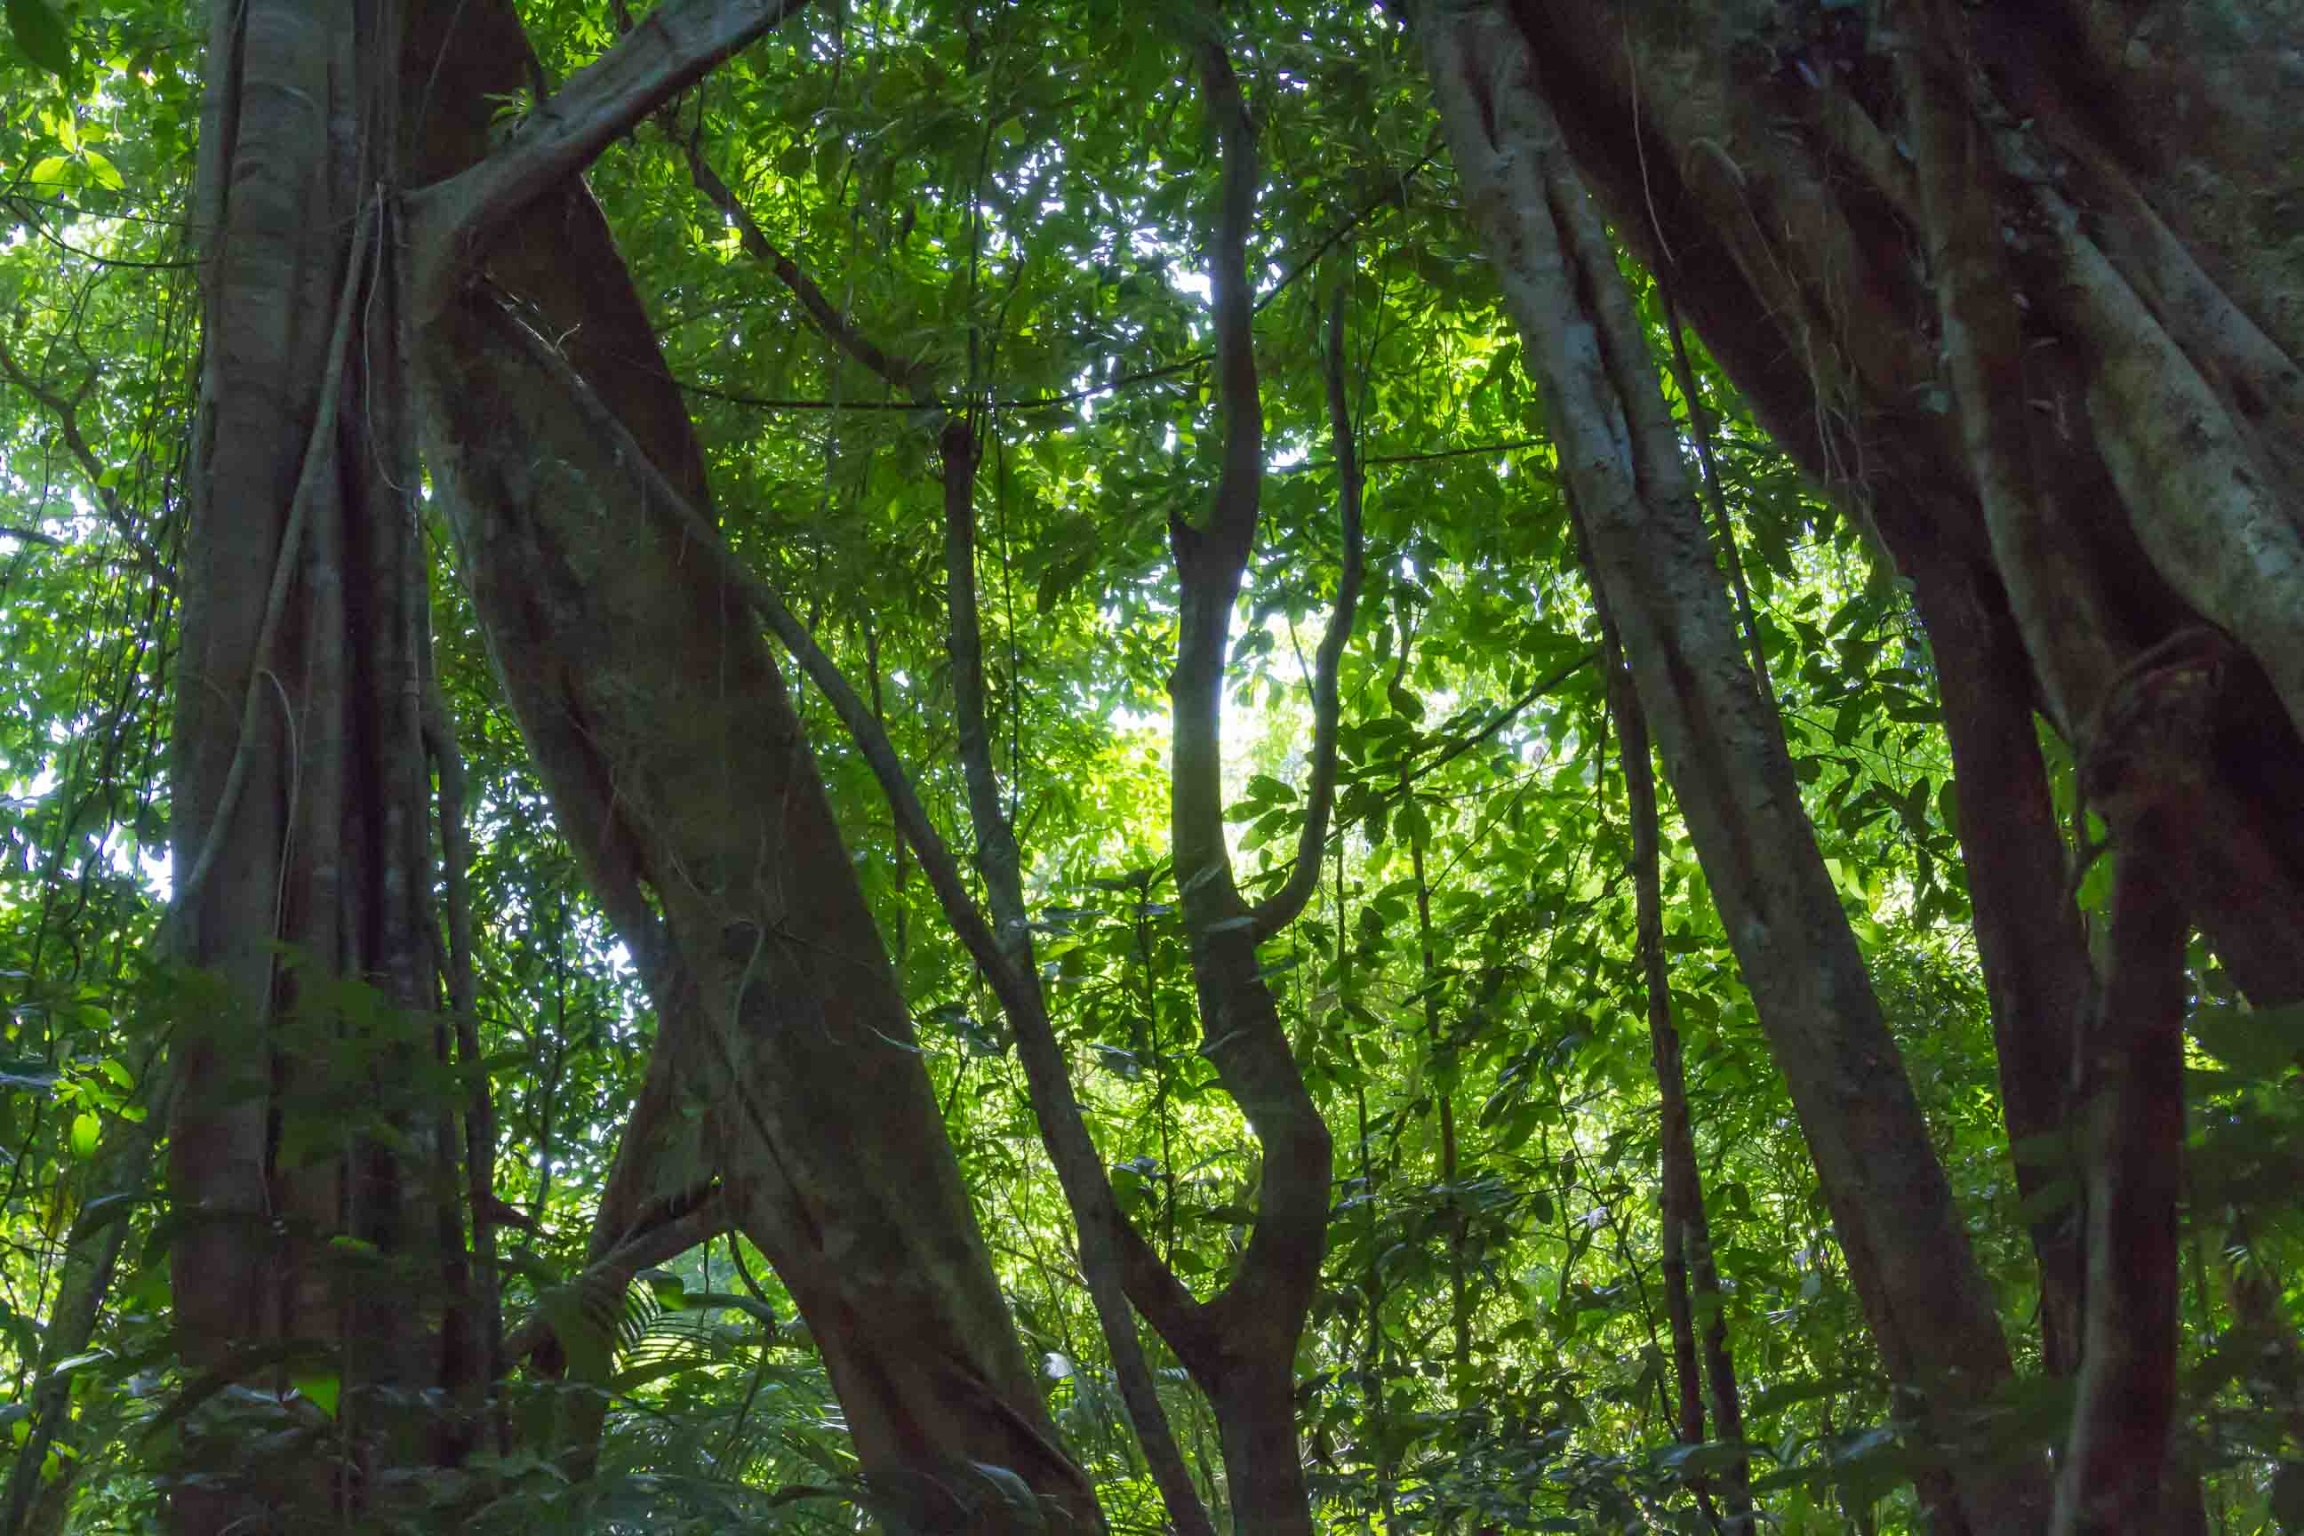 Tree trunks with vibrant green leaves